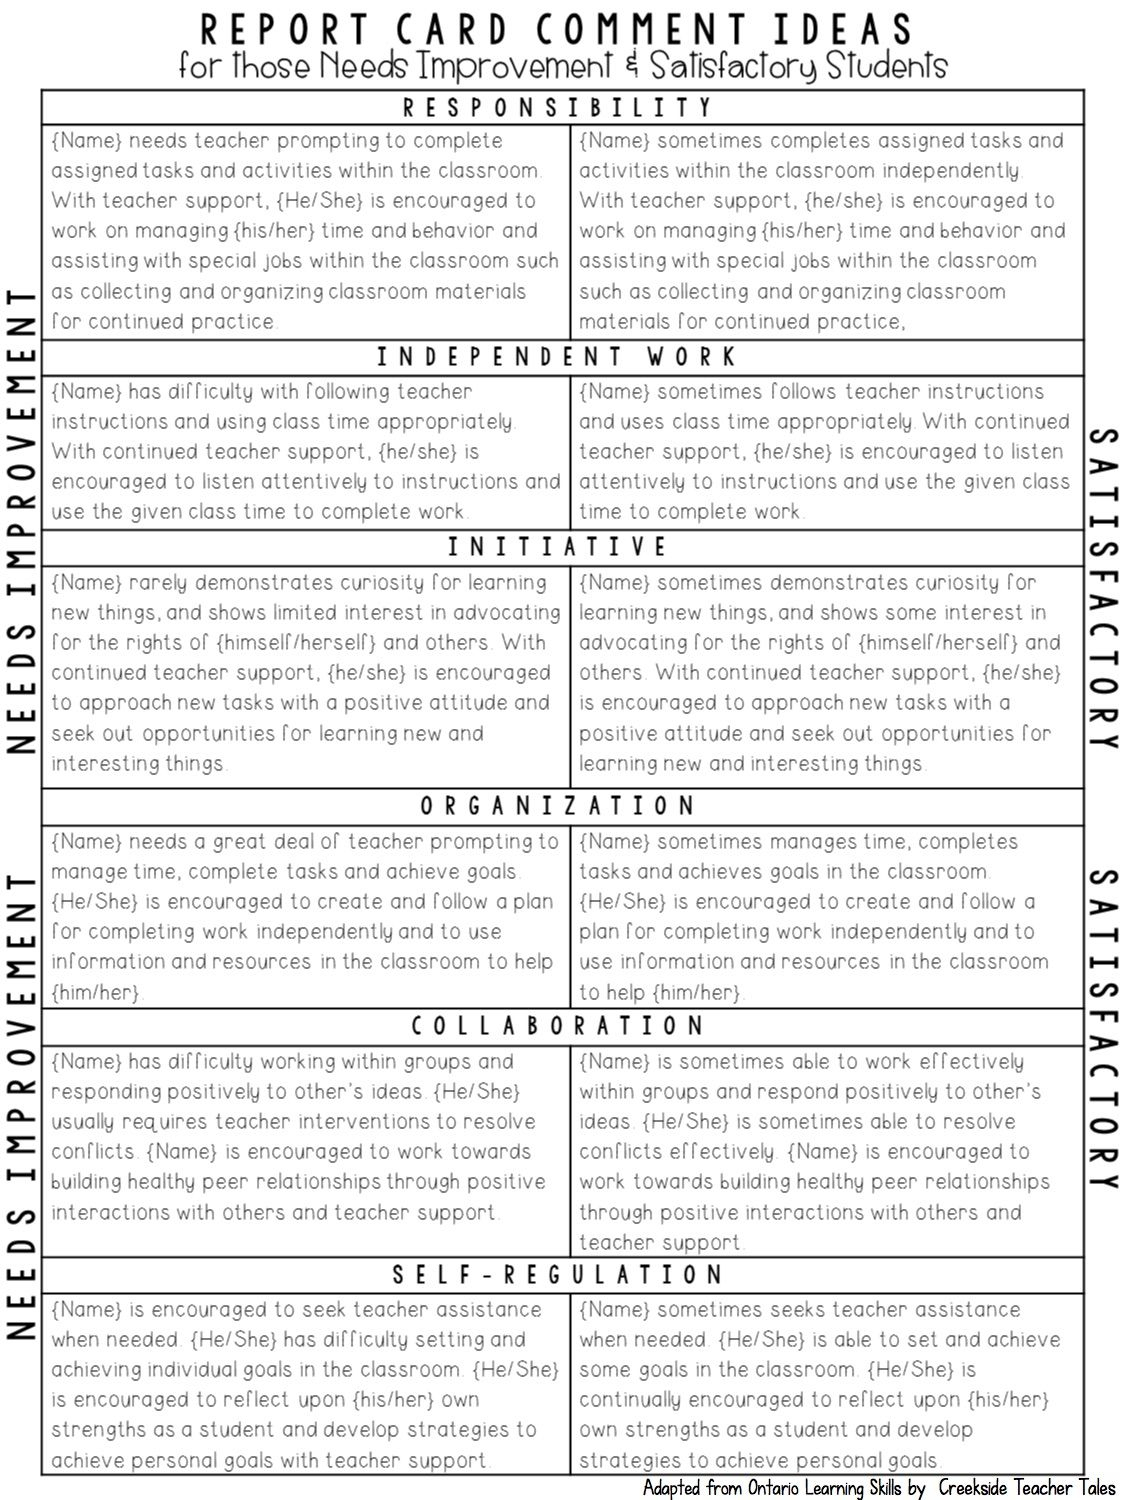 Tips For Not Letting Report Cards Get You Down | Assessment - Free Printable Report Card Comments